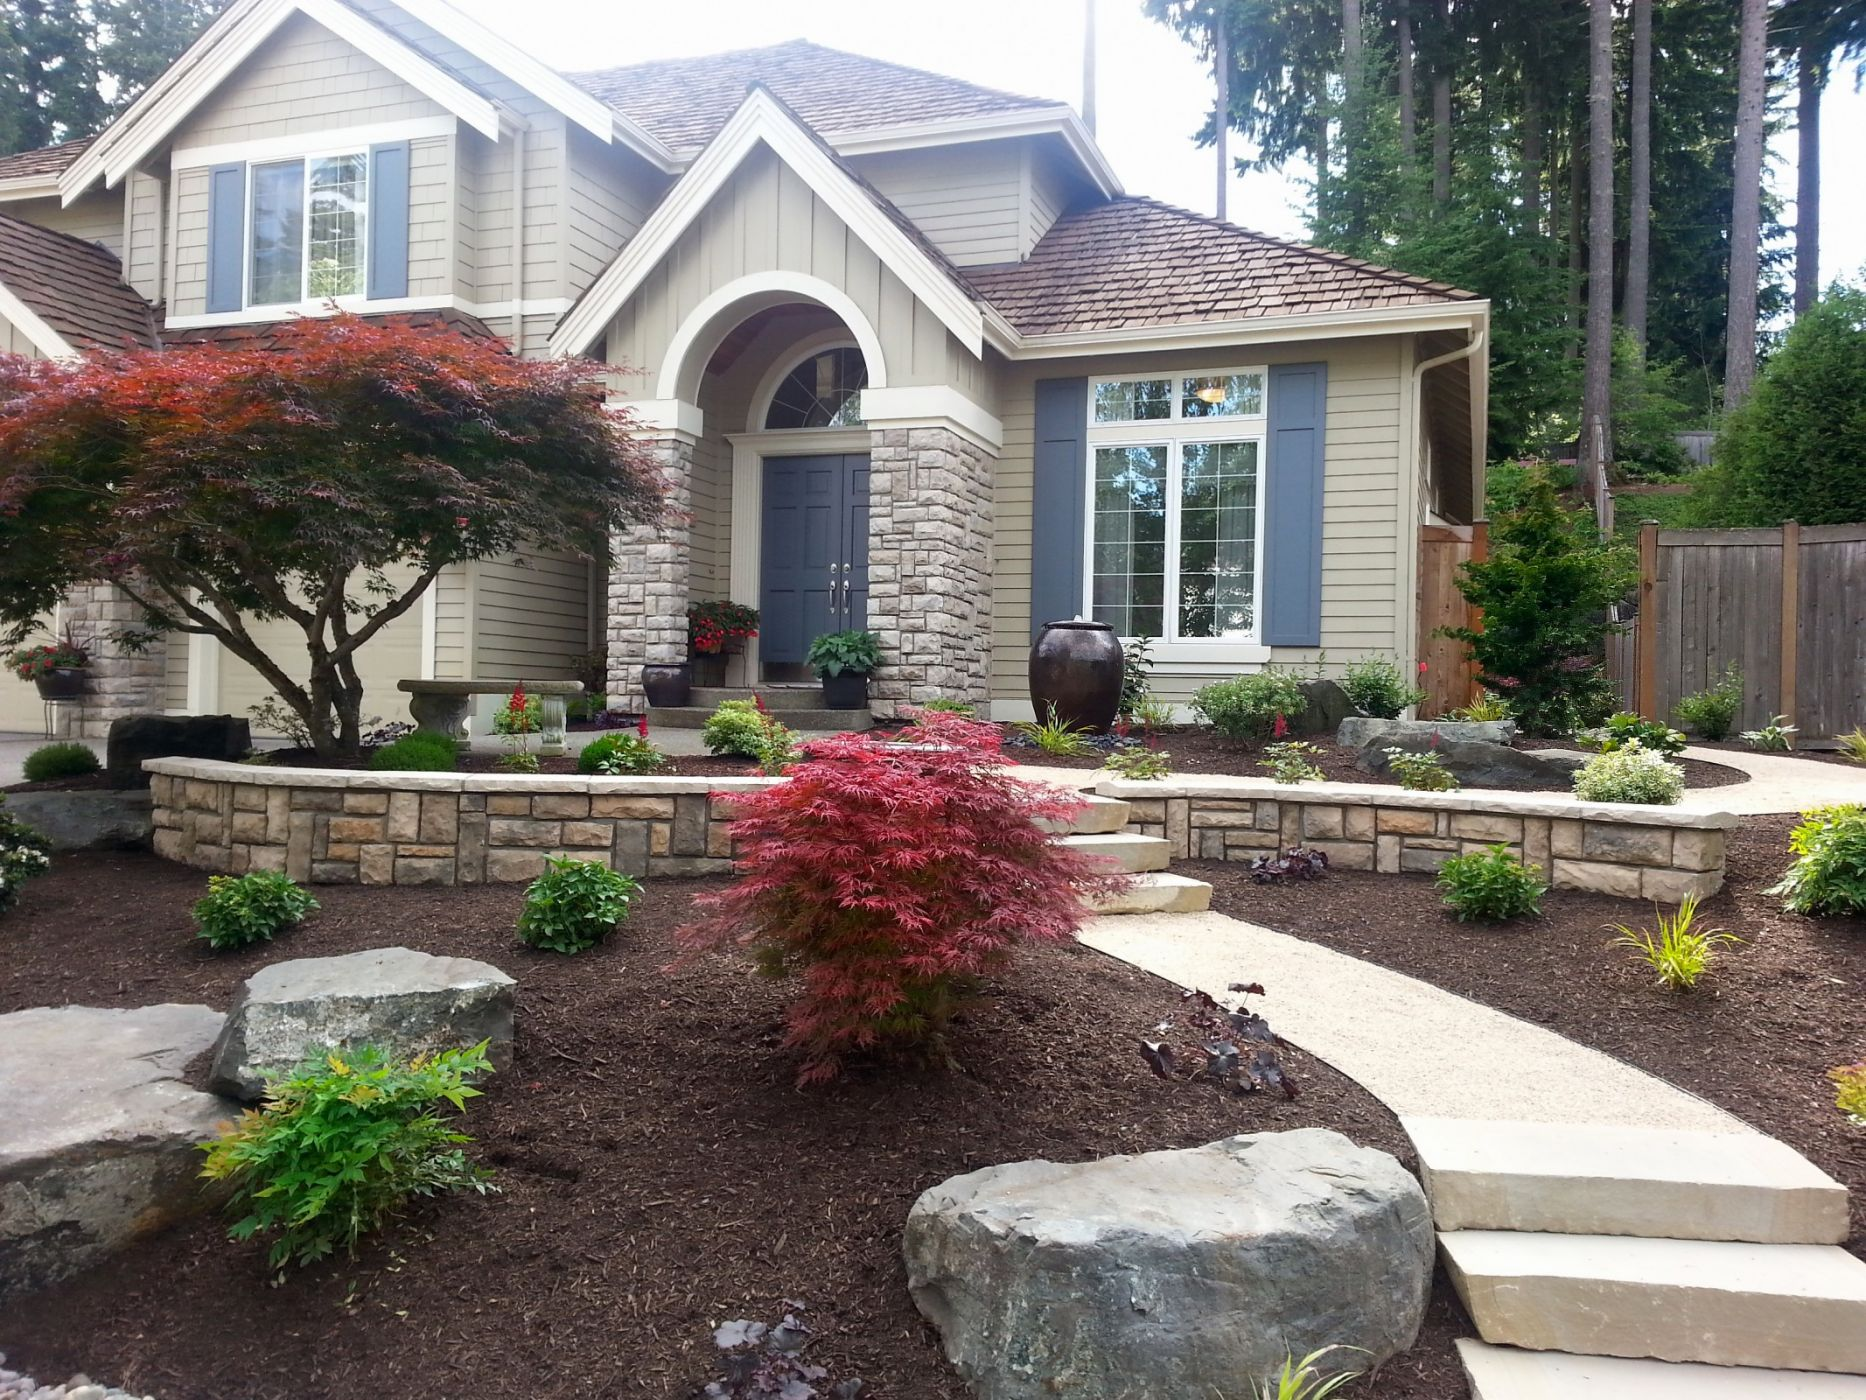 Mill Creek Curb Appeal | Sublime Garden Design | Landscape ... on Backyard Landscaping Near Me id=31085